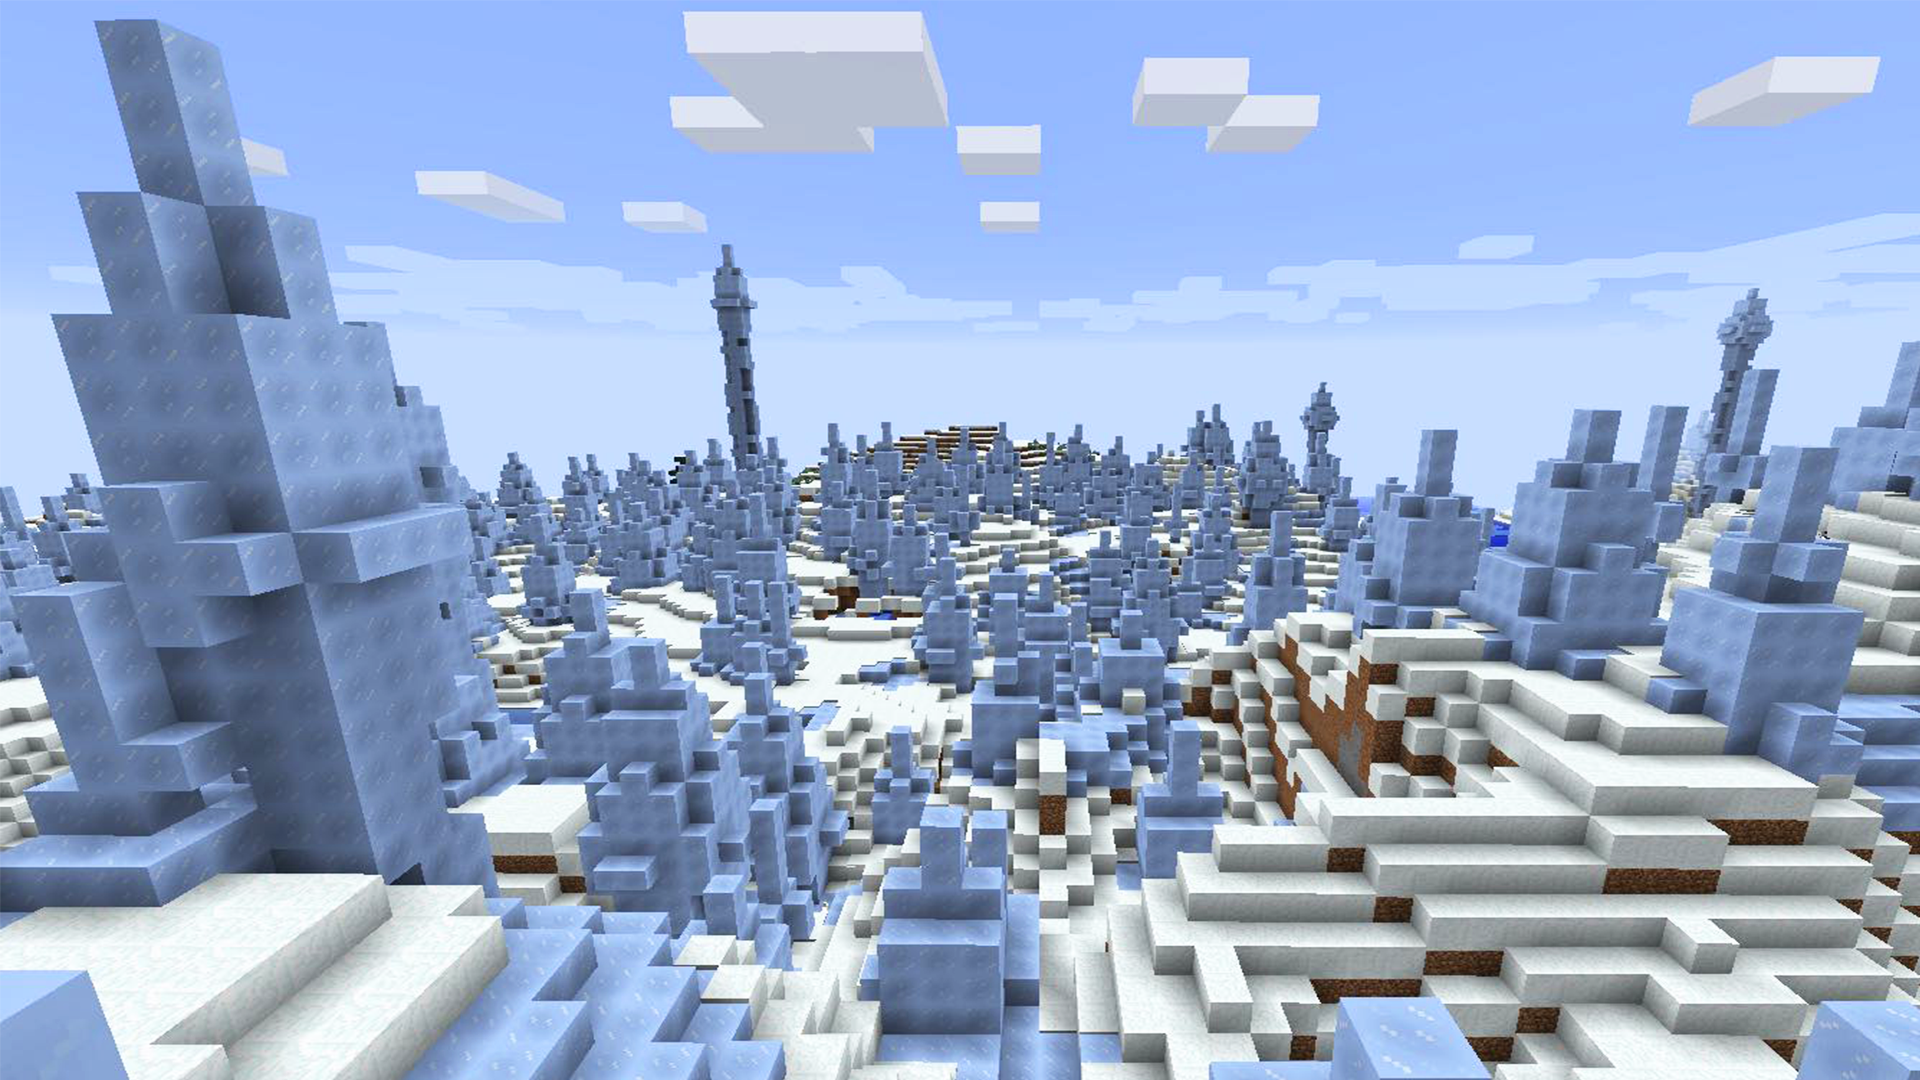 Noxcrew What Are The Different Minecraft Biomes How do you get past those? different minecraft biomes